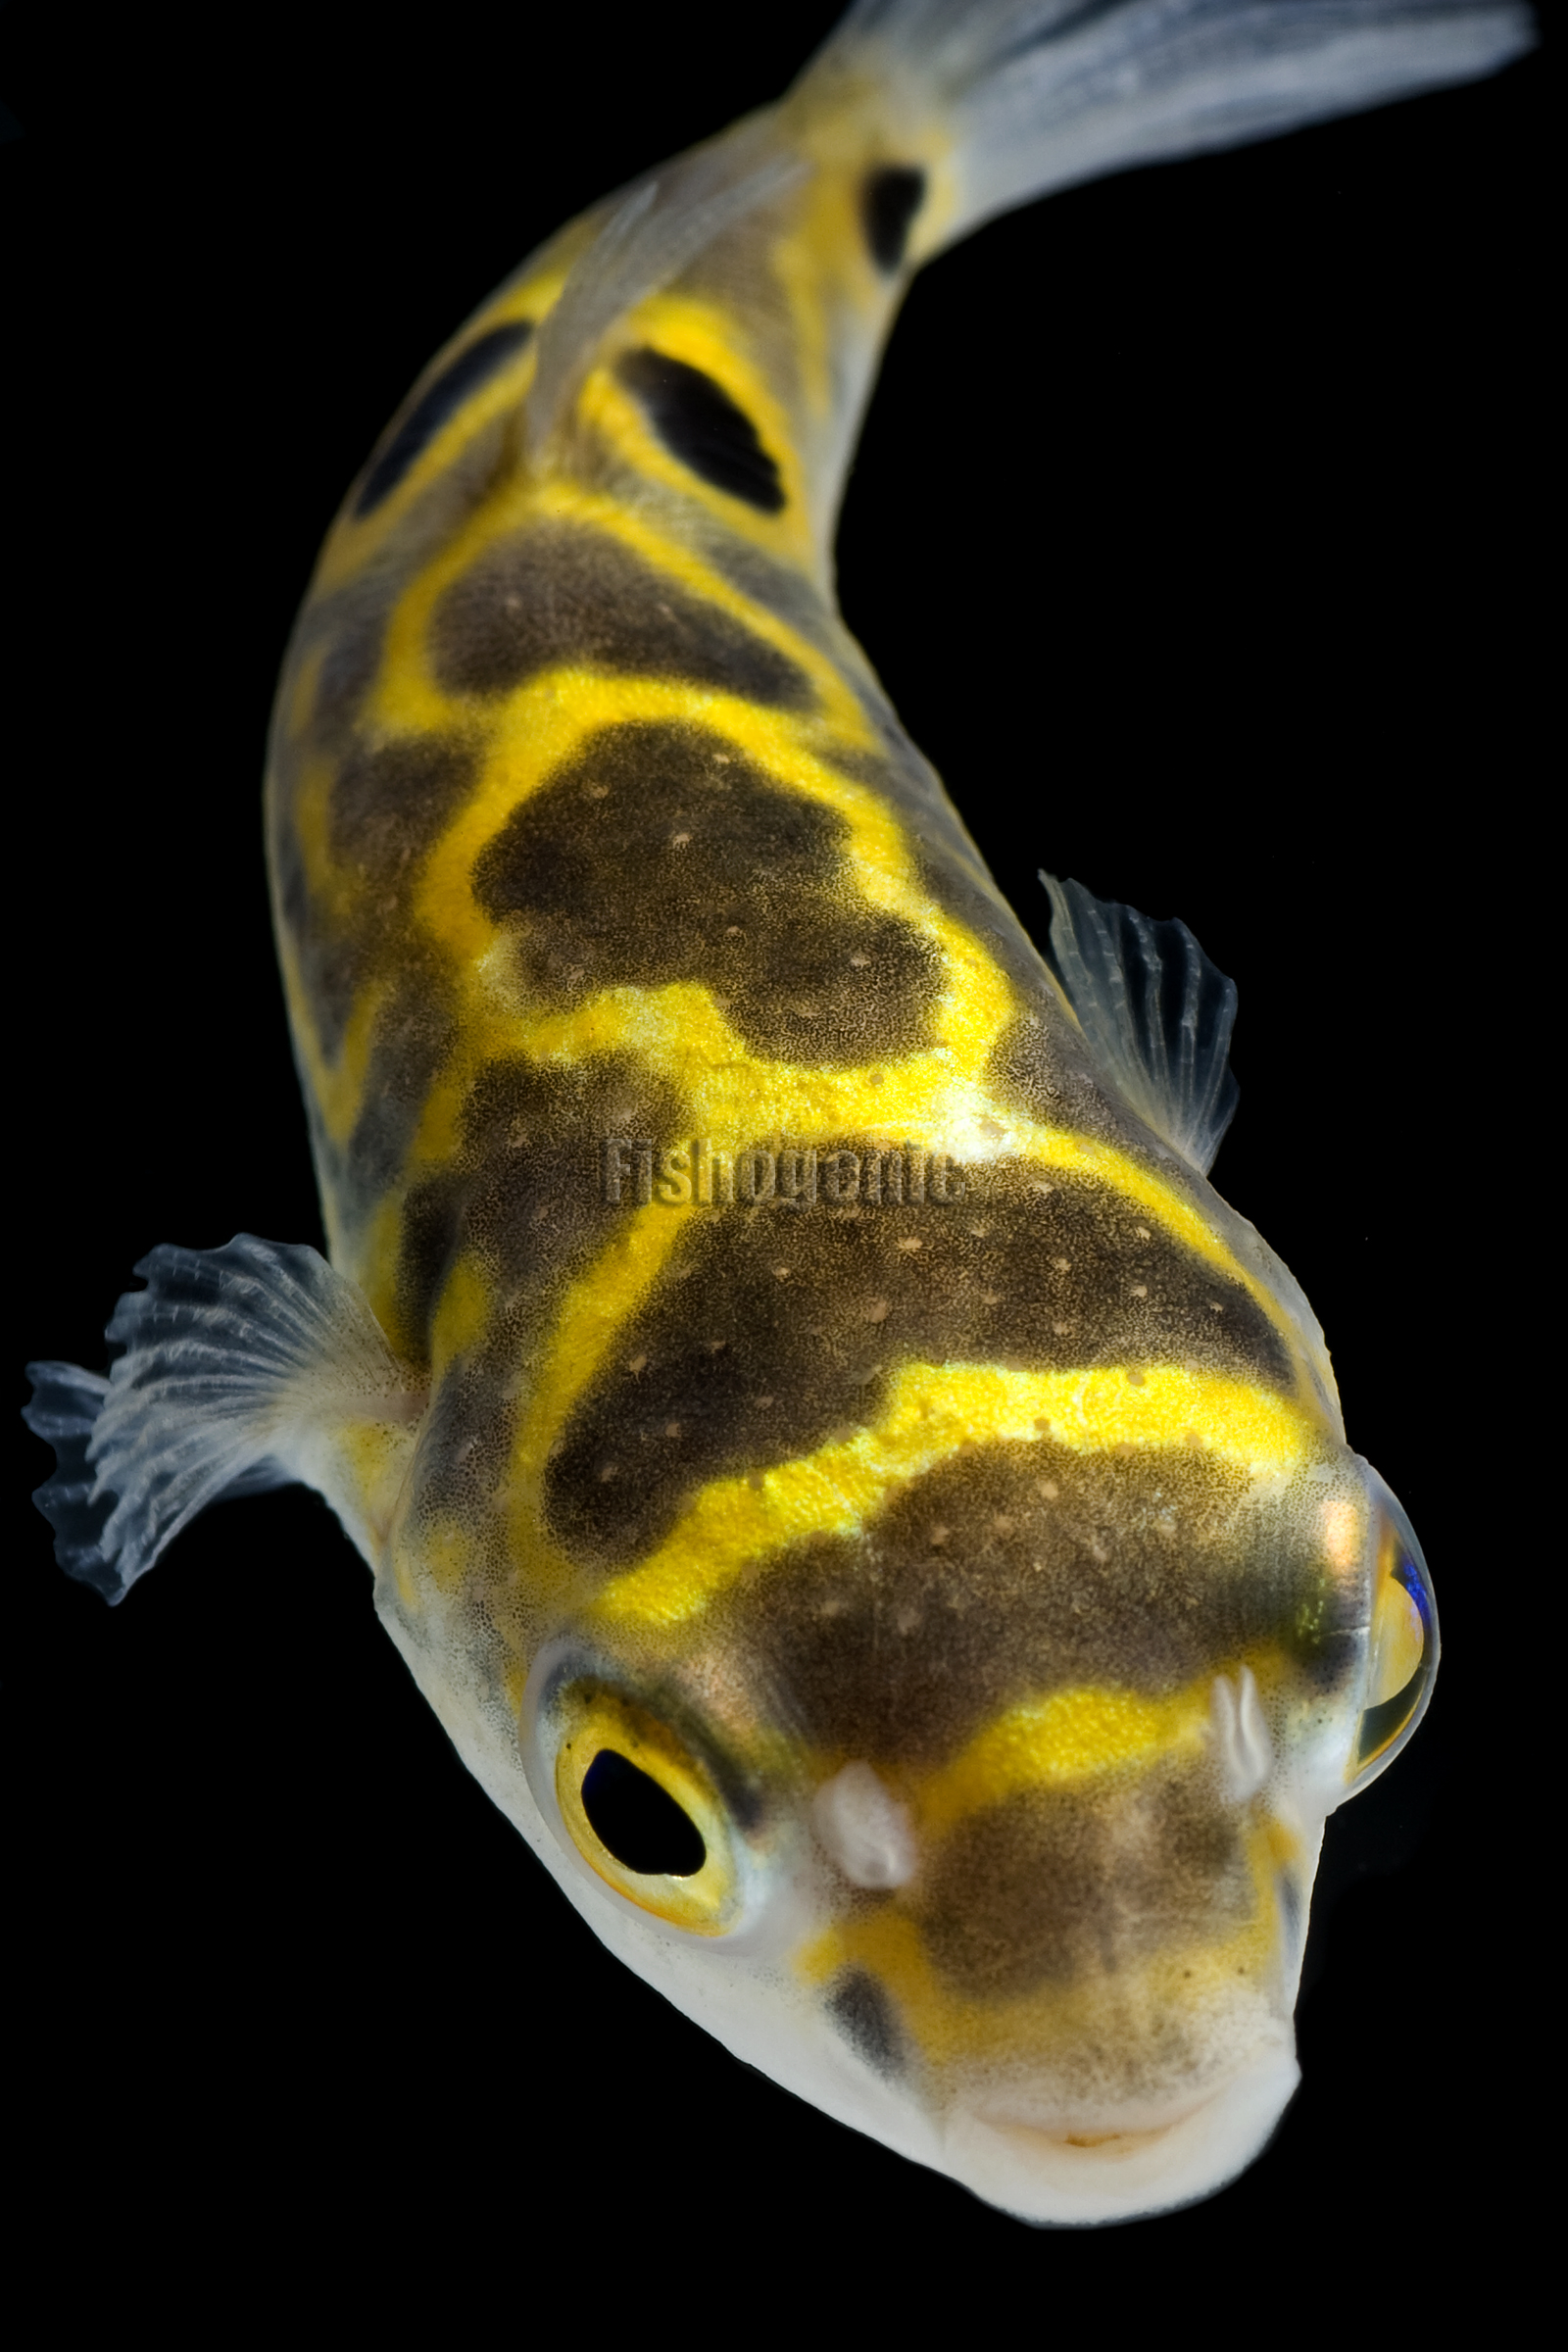 Figure Eight Puffer Fishogenic